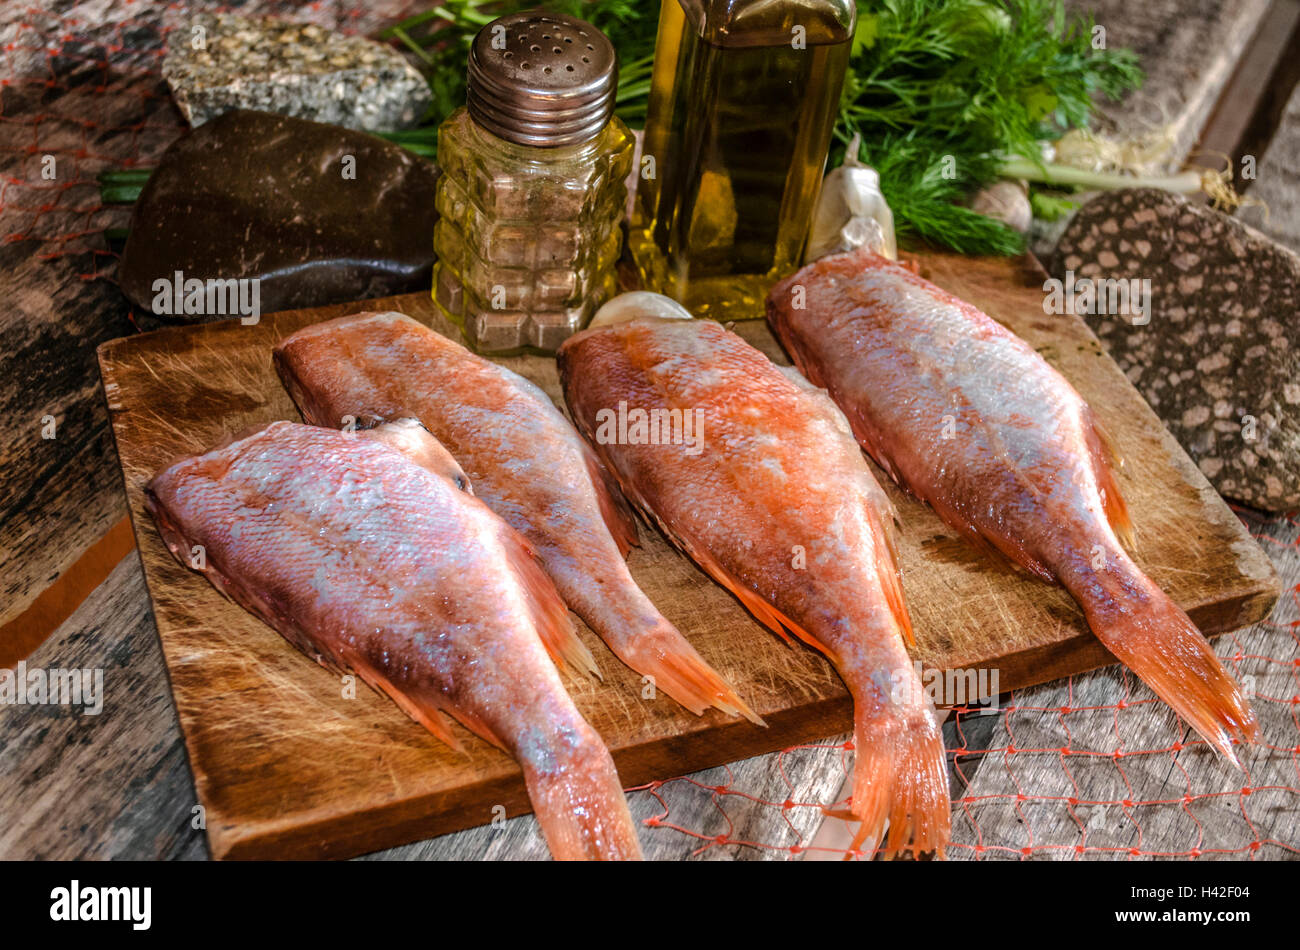 Processed carcasses of red grouper with herbs and spices - Stock Image